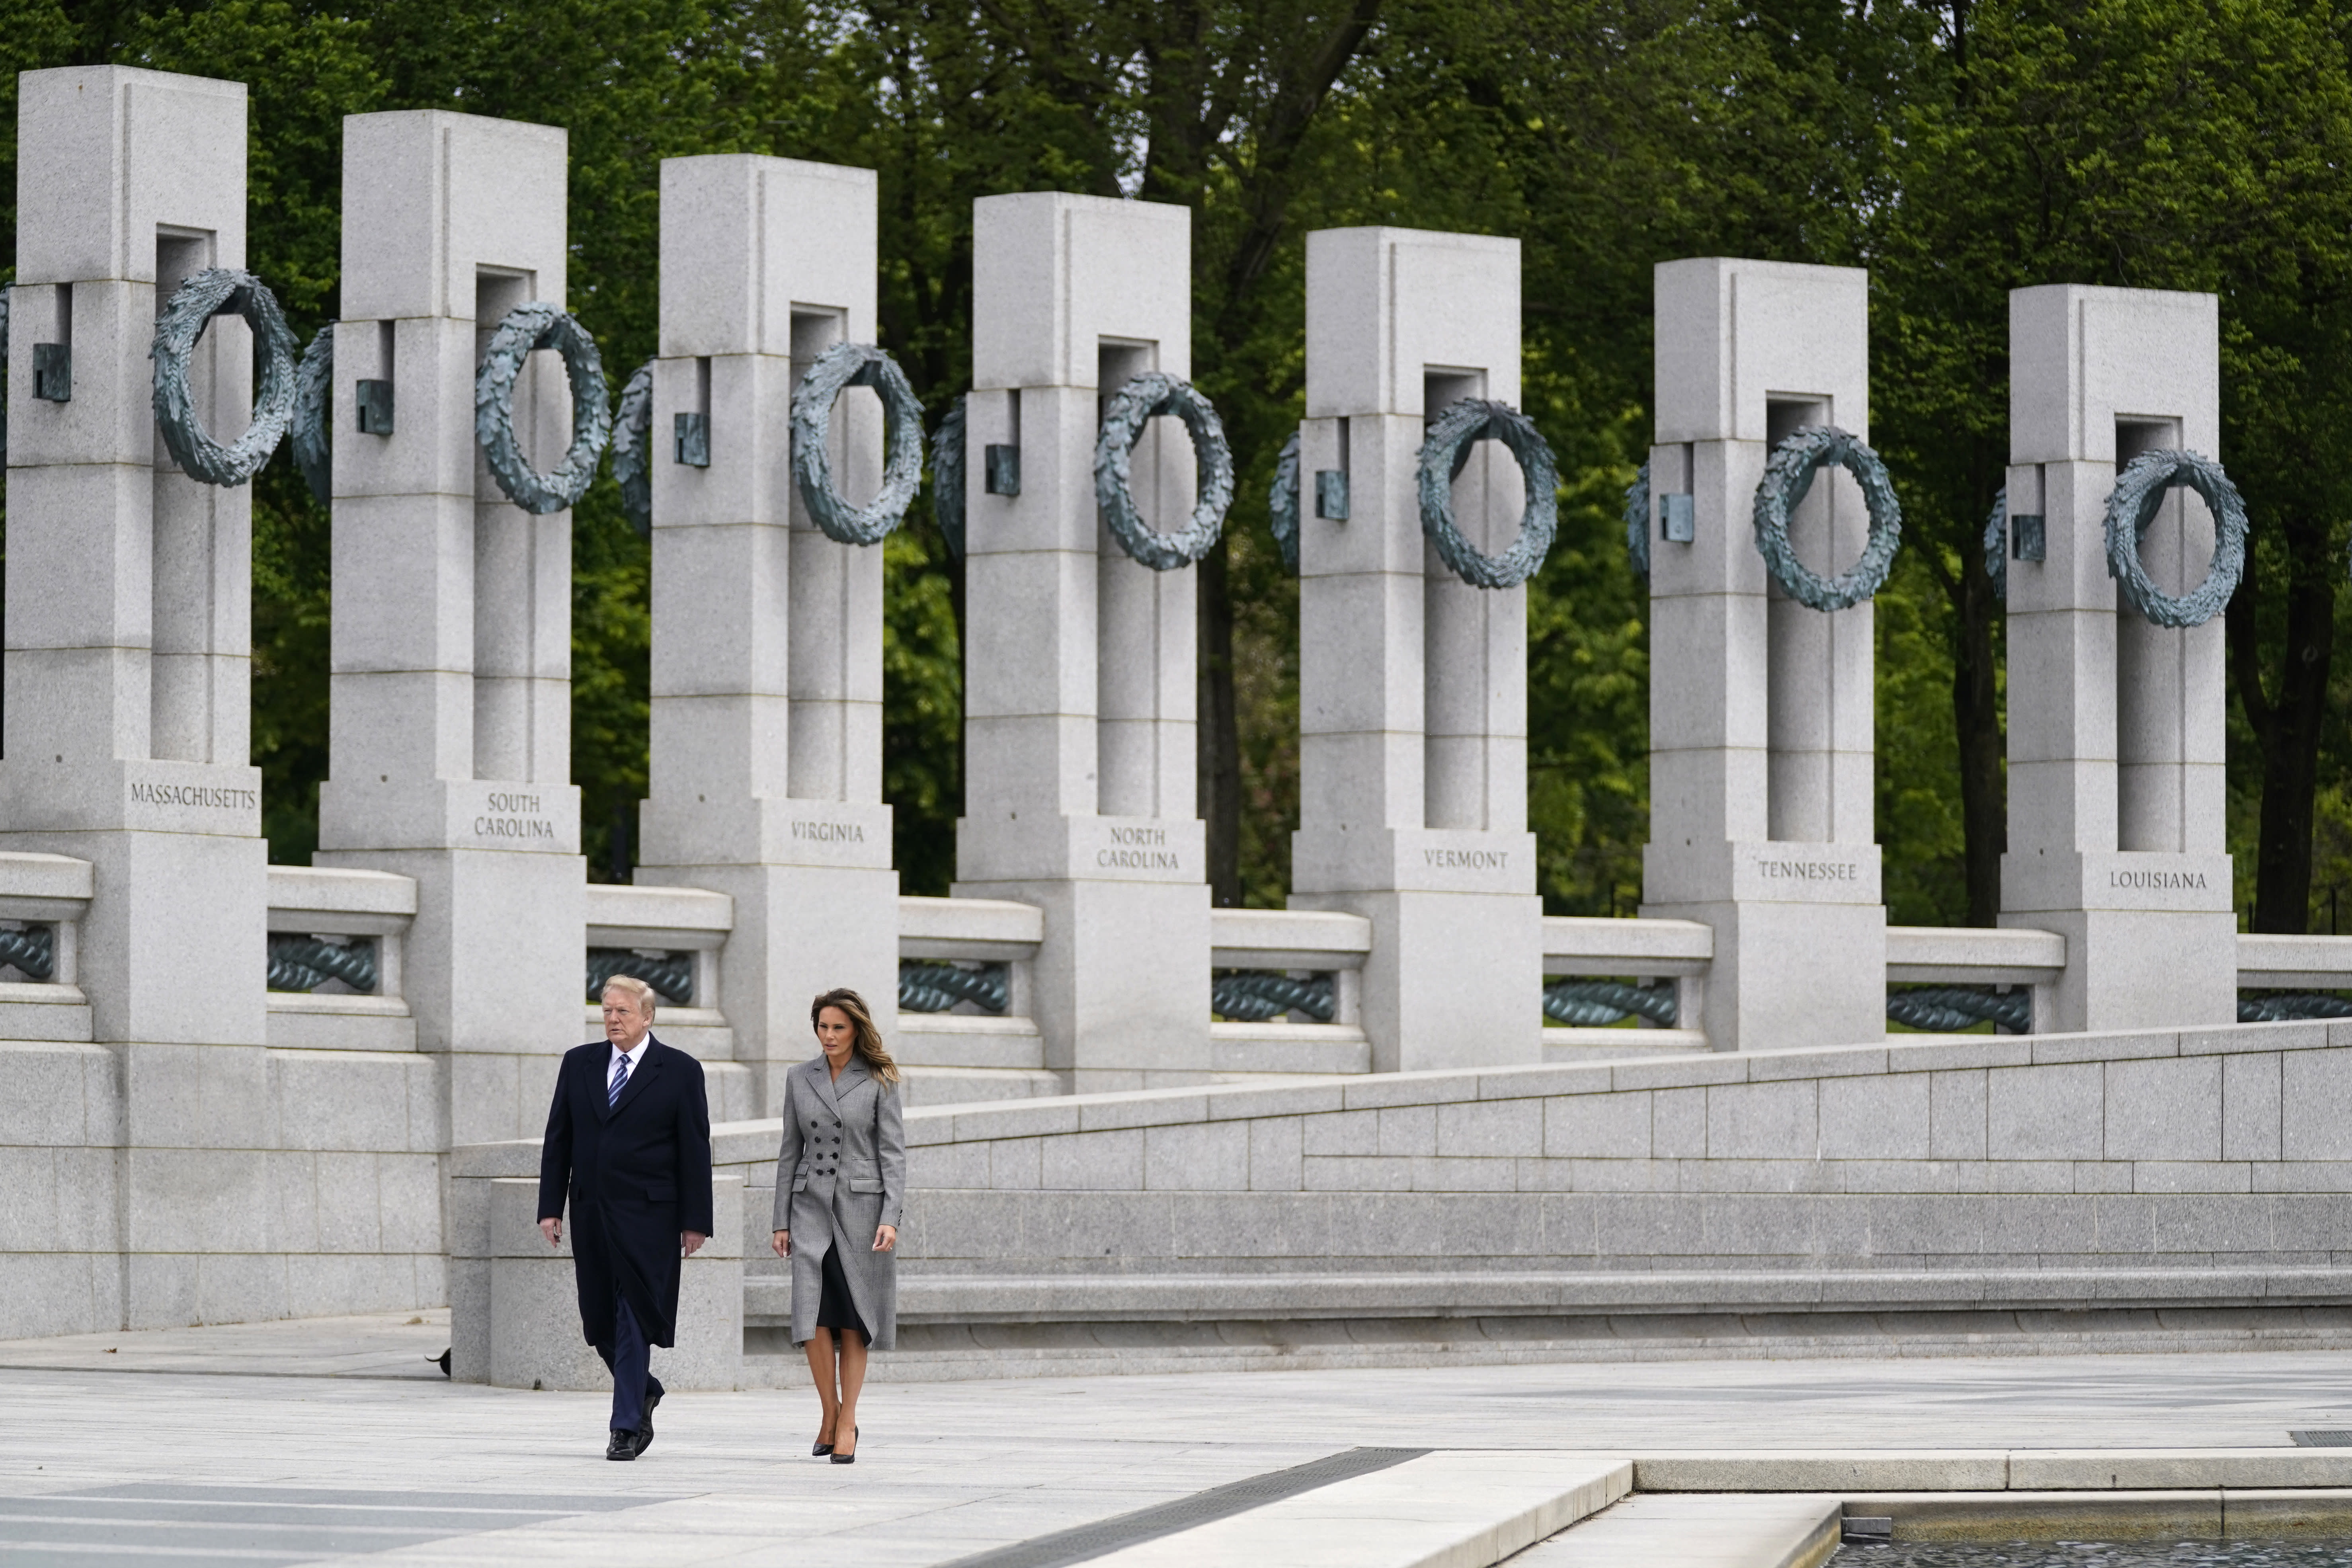 President Donald Trump and first lady Melania Trump visit the World War II Memorial to commemorate the 75th anniversary of Victory in Europe Day, Friday, May 8, 2020, in Washington. (AP Photo/Evan Vucci)